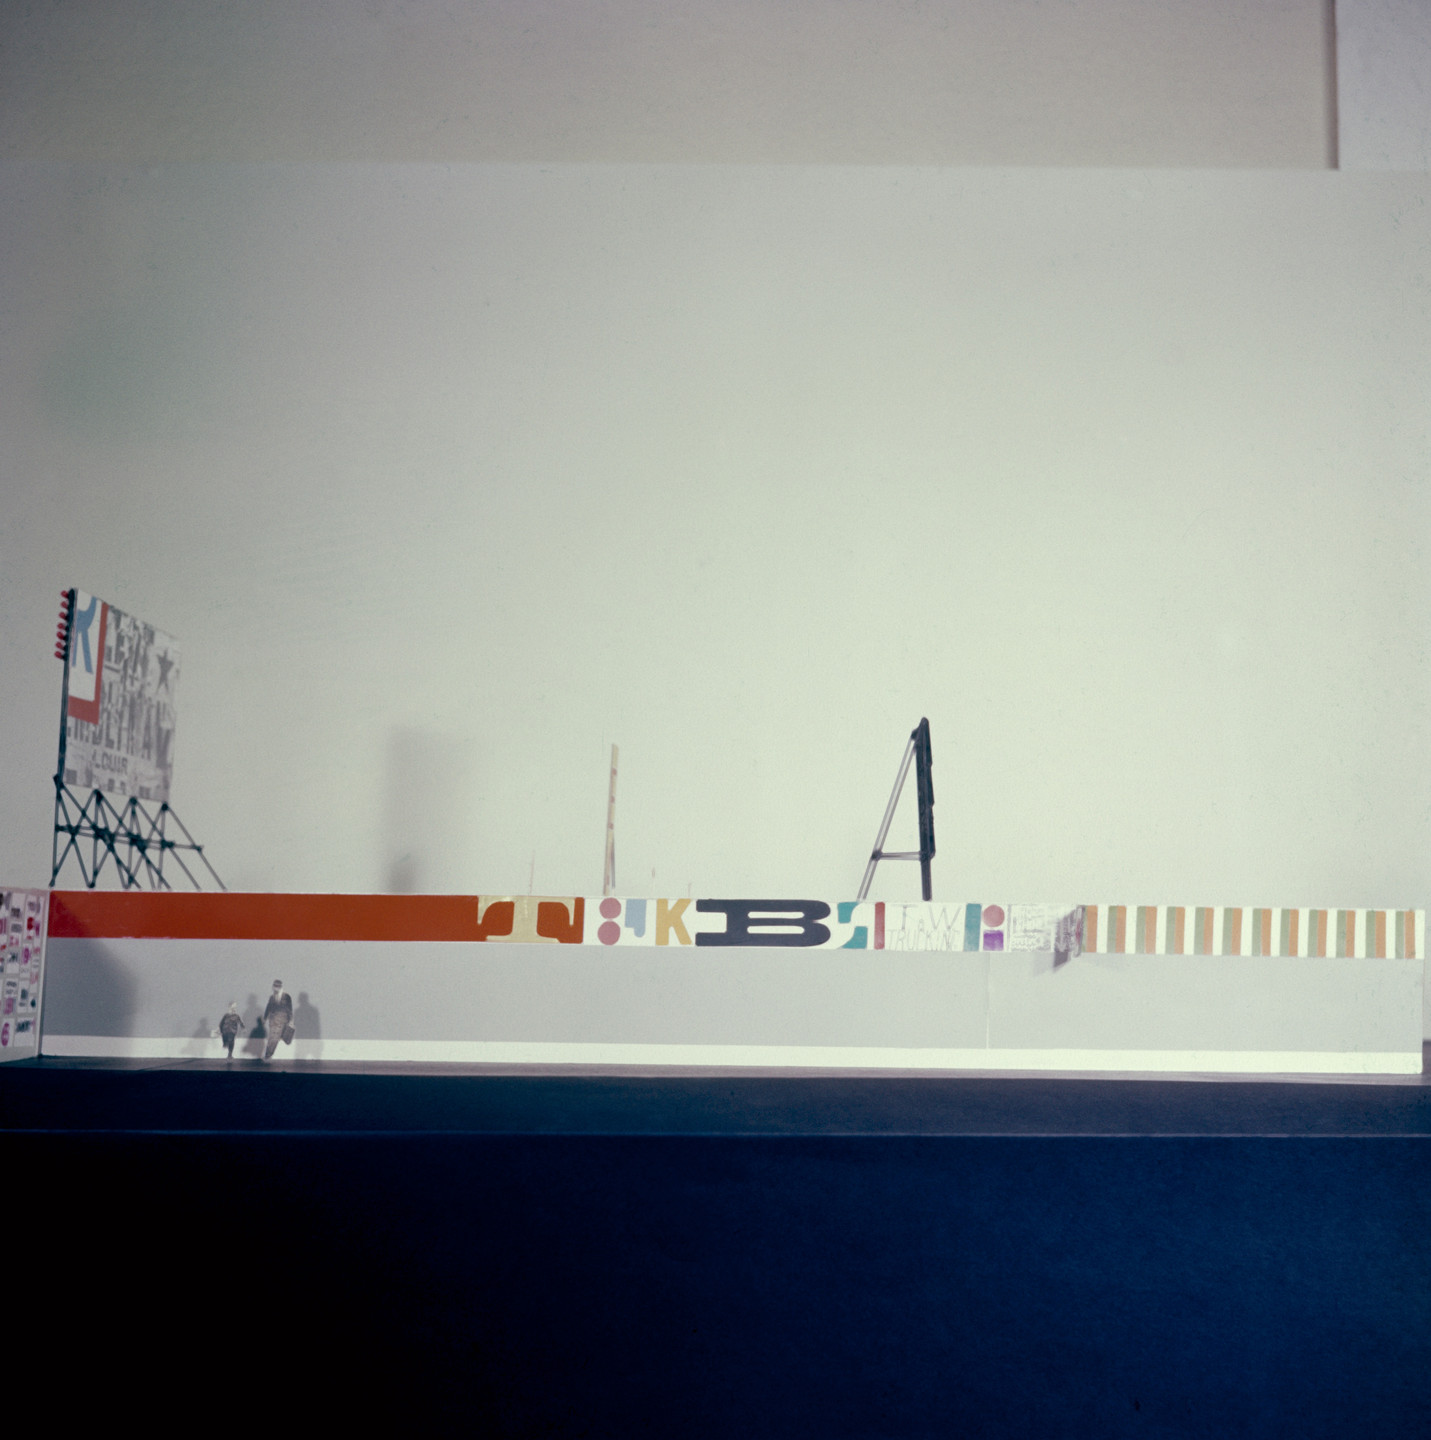 Robert Brownjohn, Ivan Chermayeff, Thomas Geismar. Brussels World Fair (View of the model). 1958